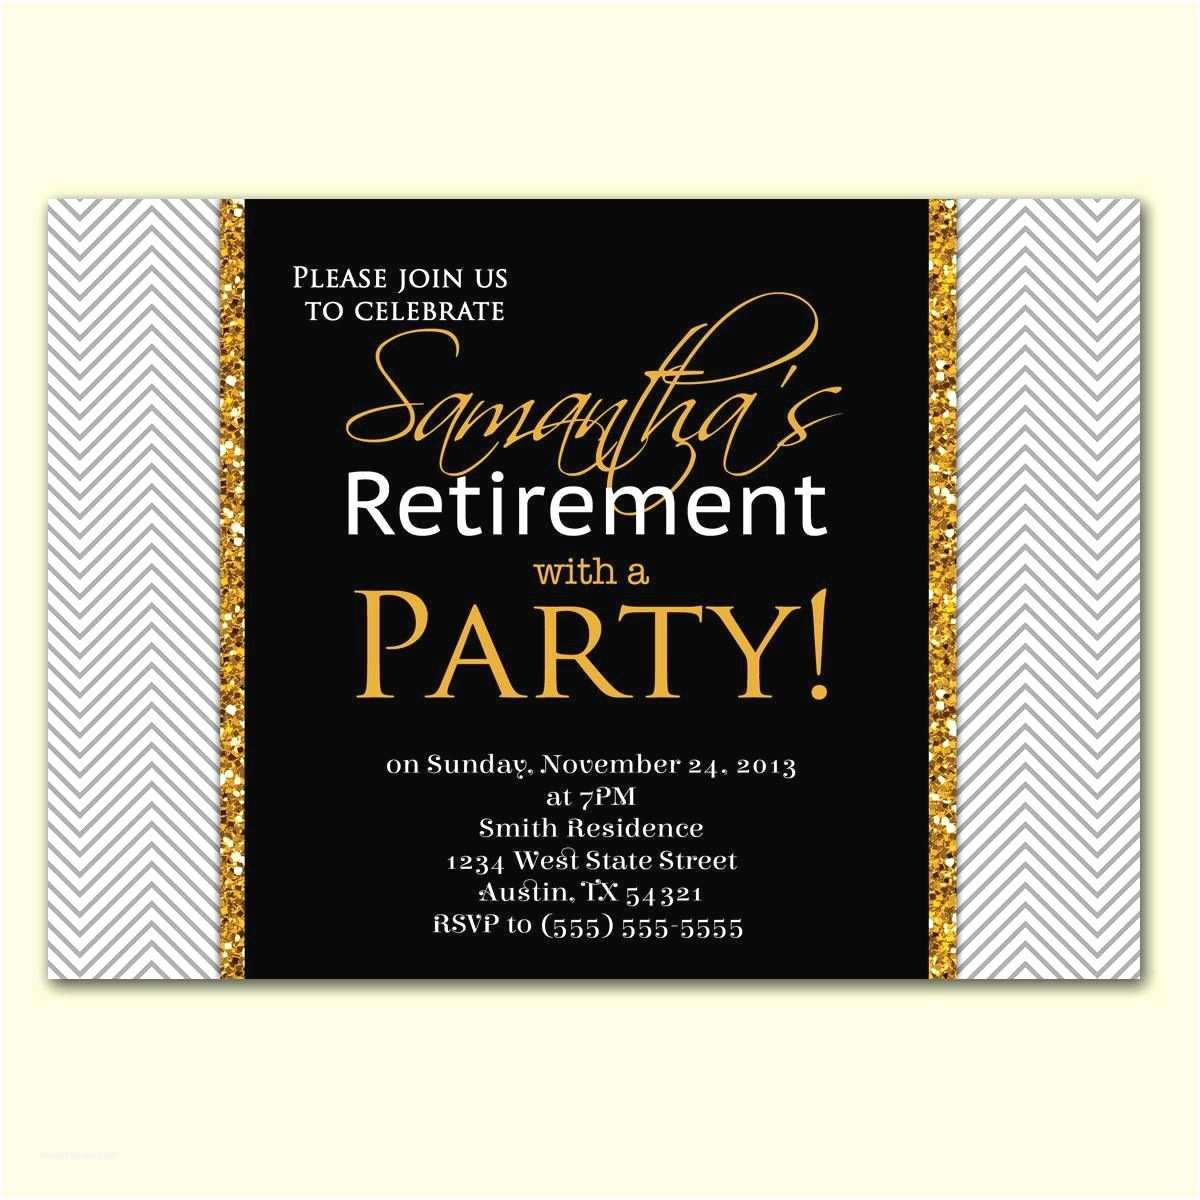 Party Invitation Sample Retirement Party Invitation Wording In Hindi